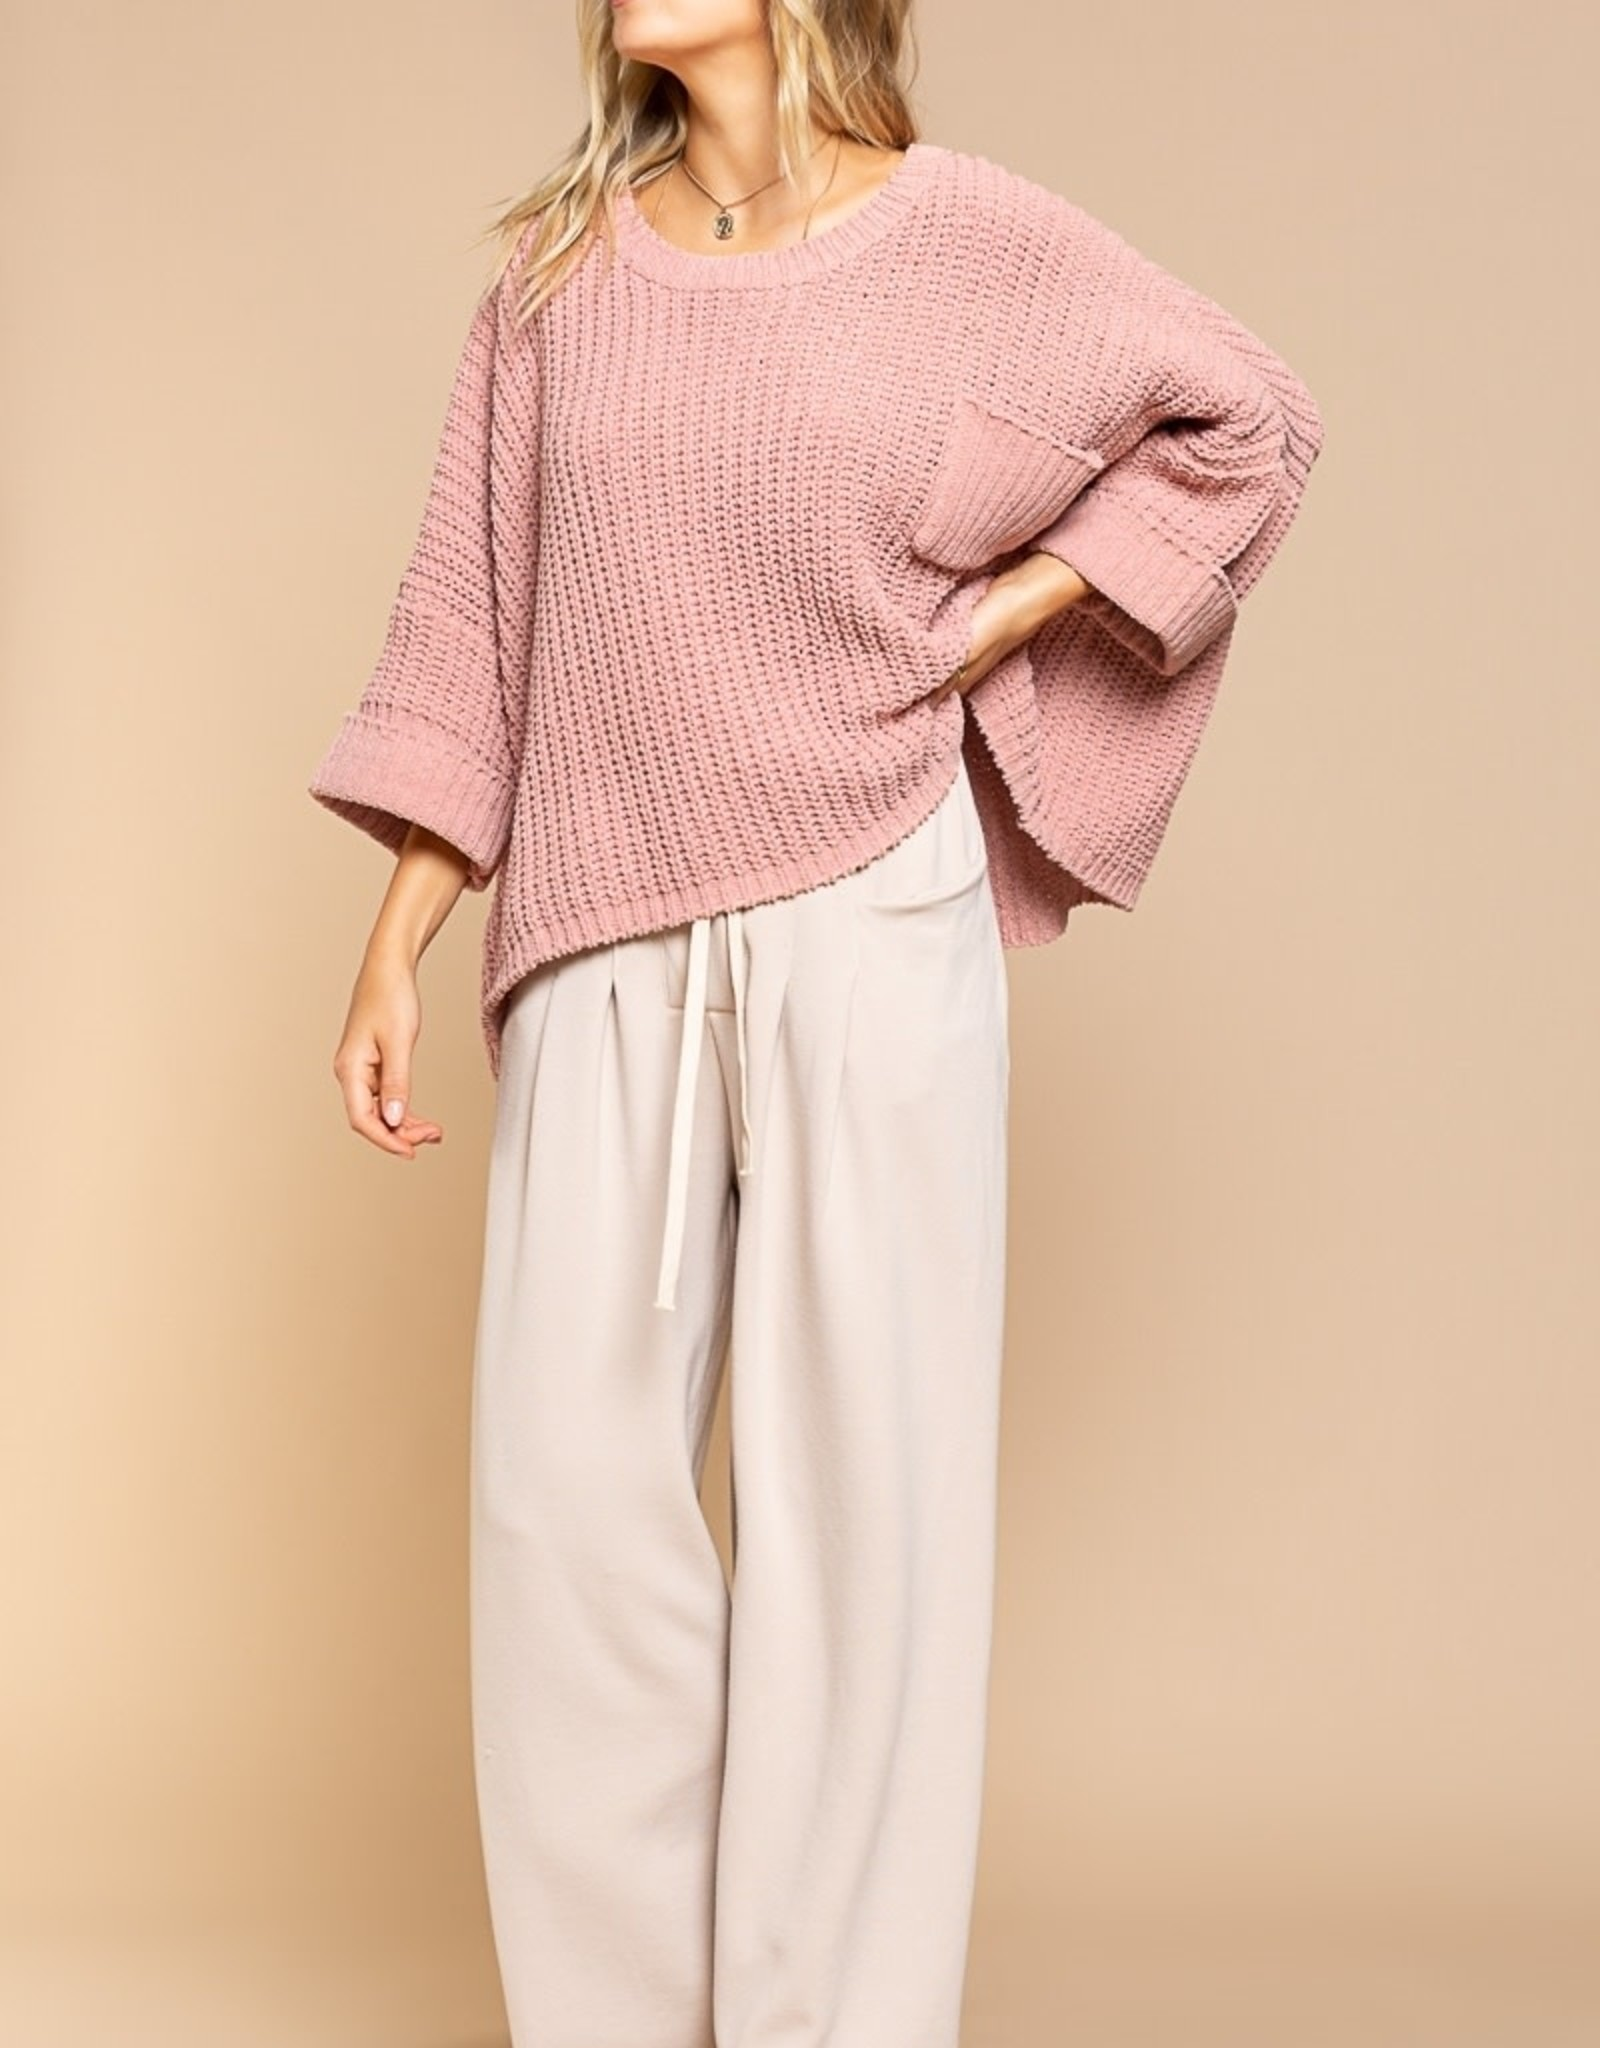 POL Clothing Chenille Pullover Sweater w Pocket